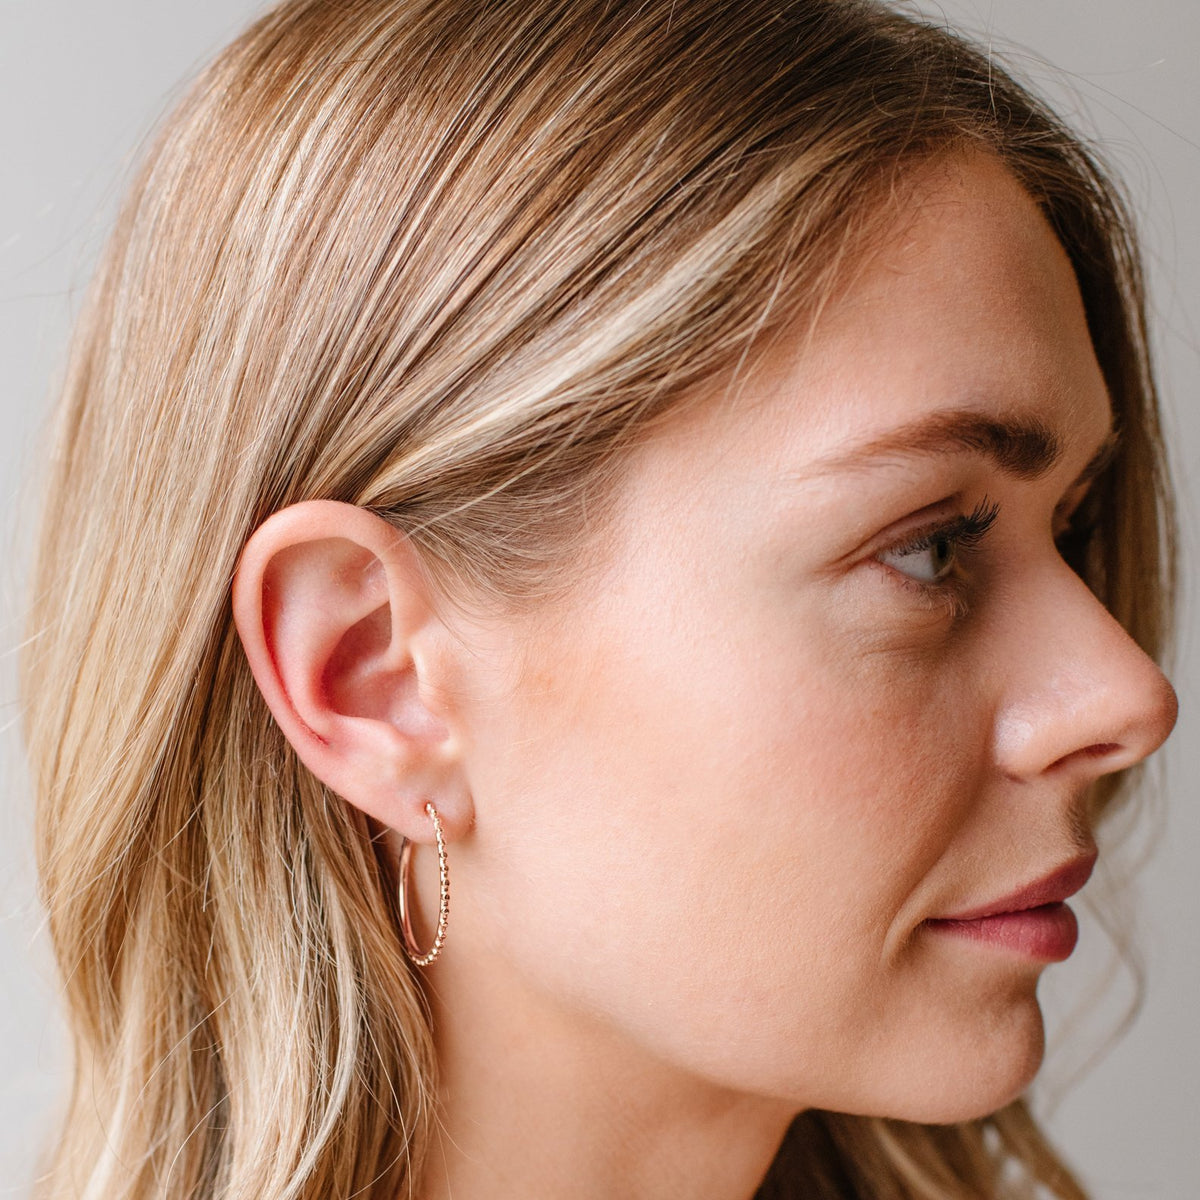 BELIEVE SOLEIL HOOPS - ROSE GOLD - SO PRETTY CARA COTTER